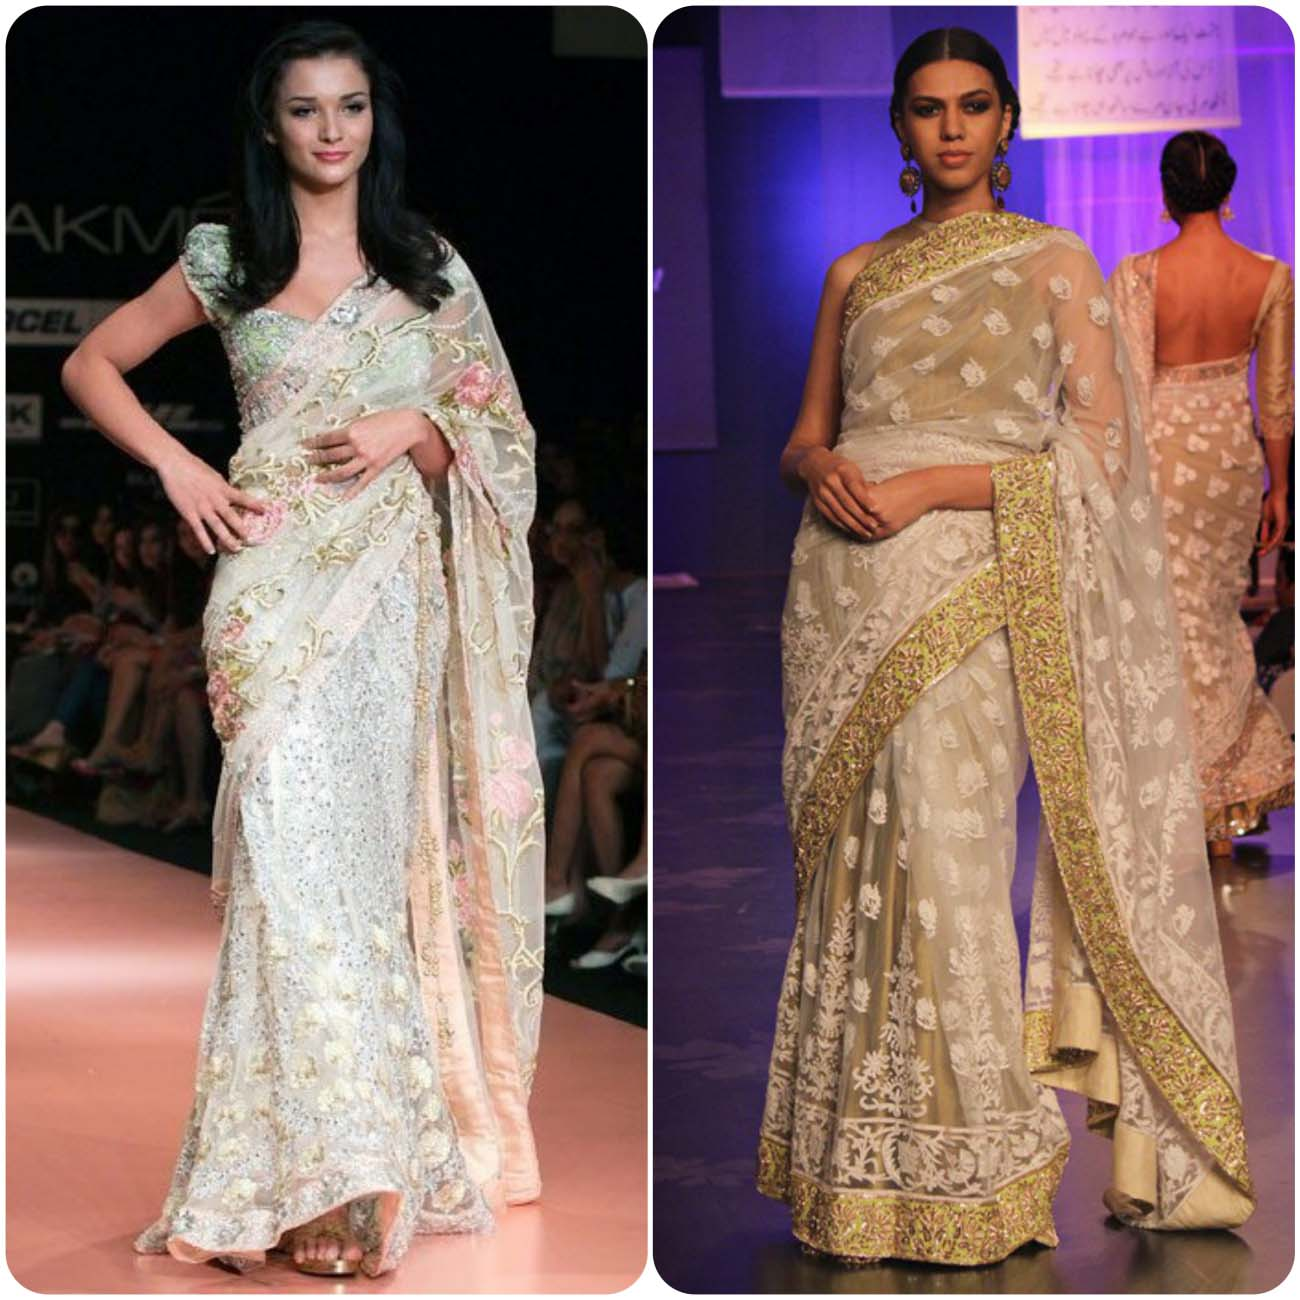 Manish Malhotra Designers Saree Collection 2016-2017